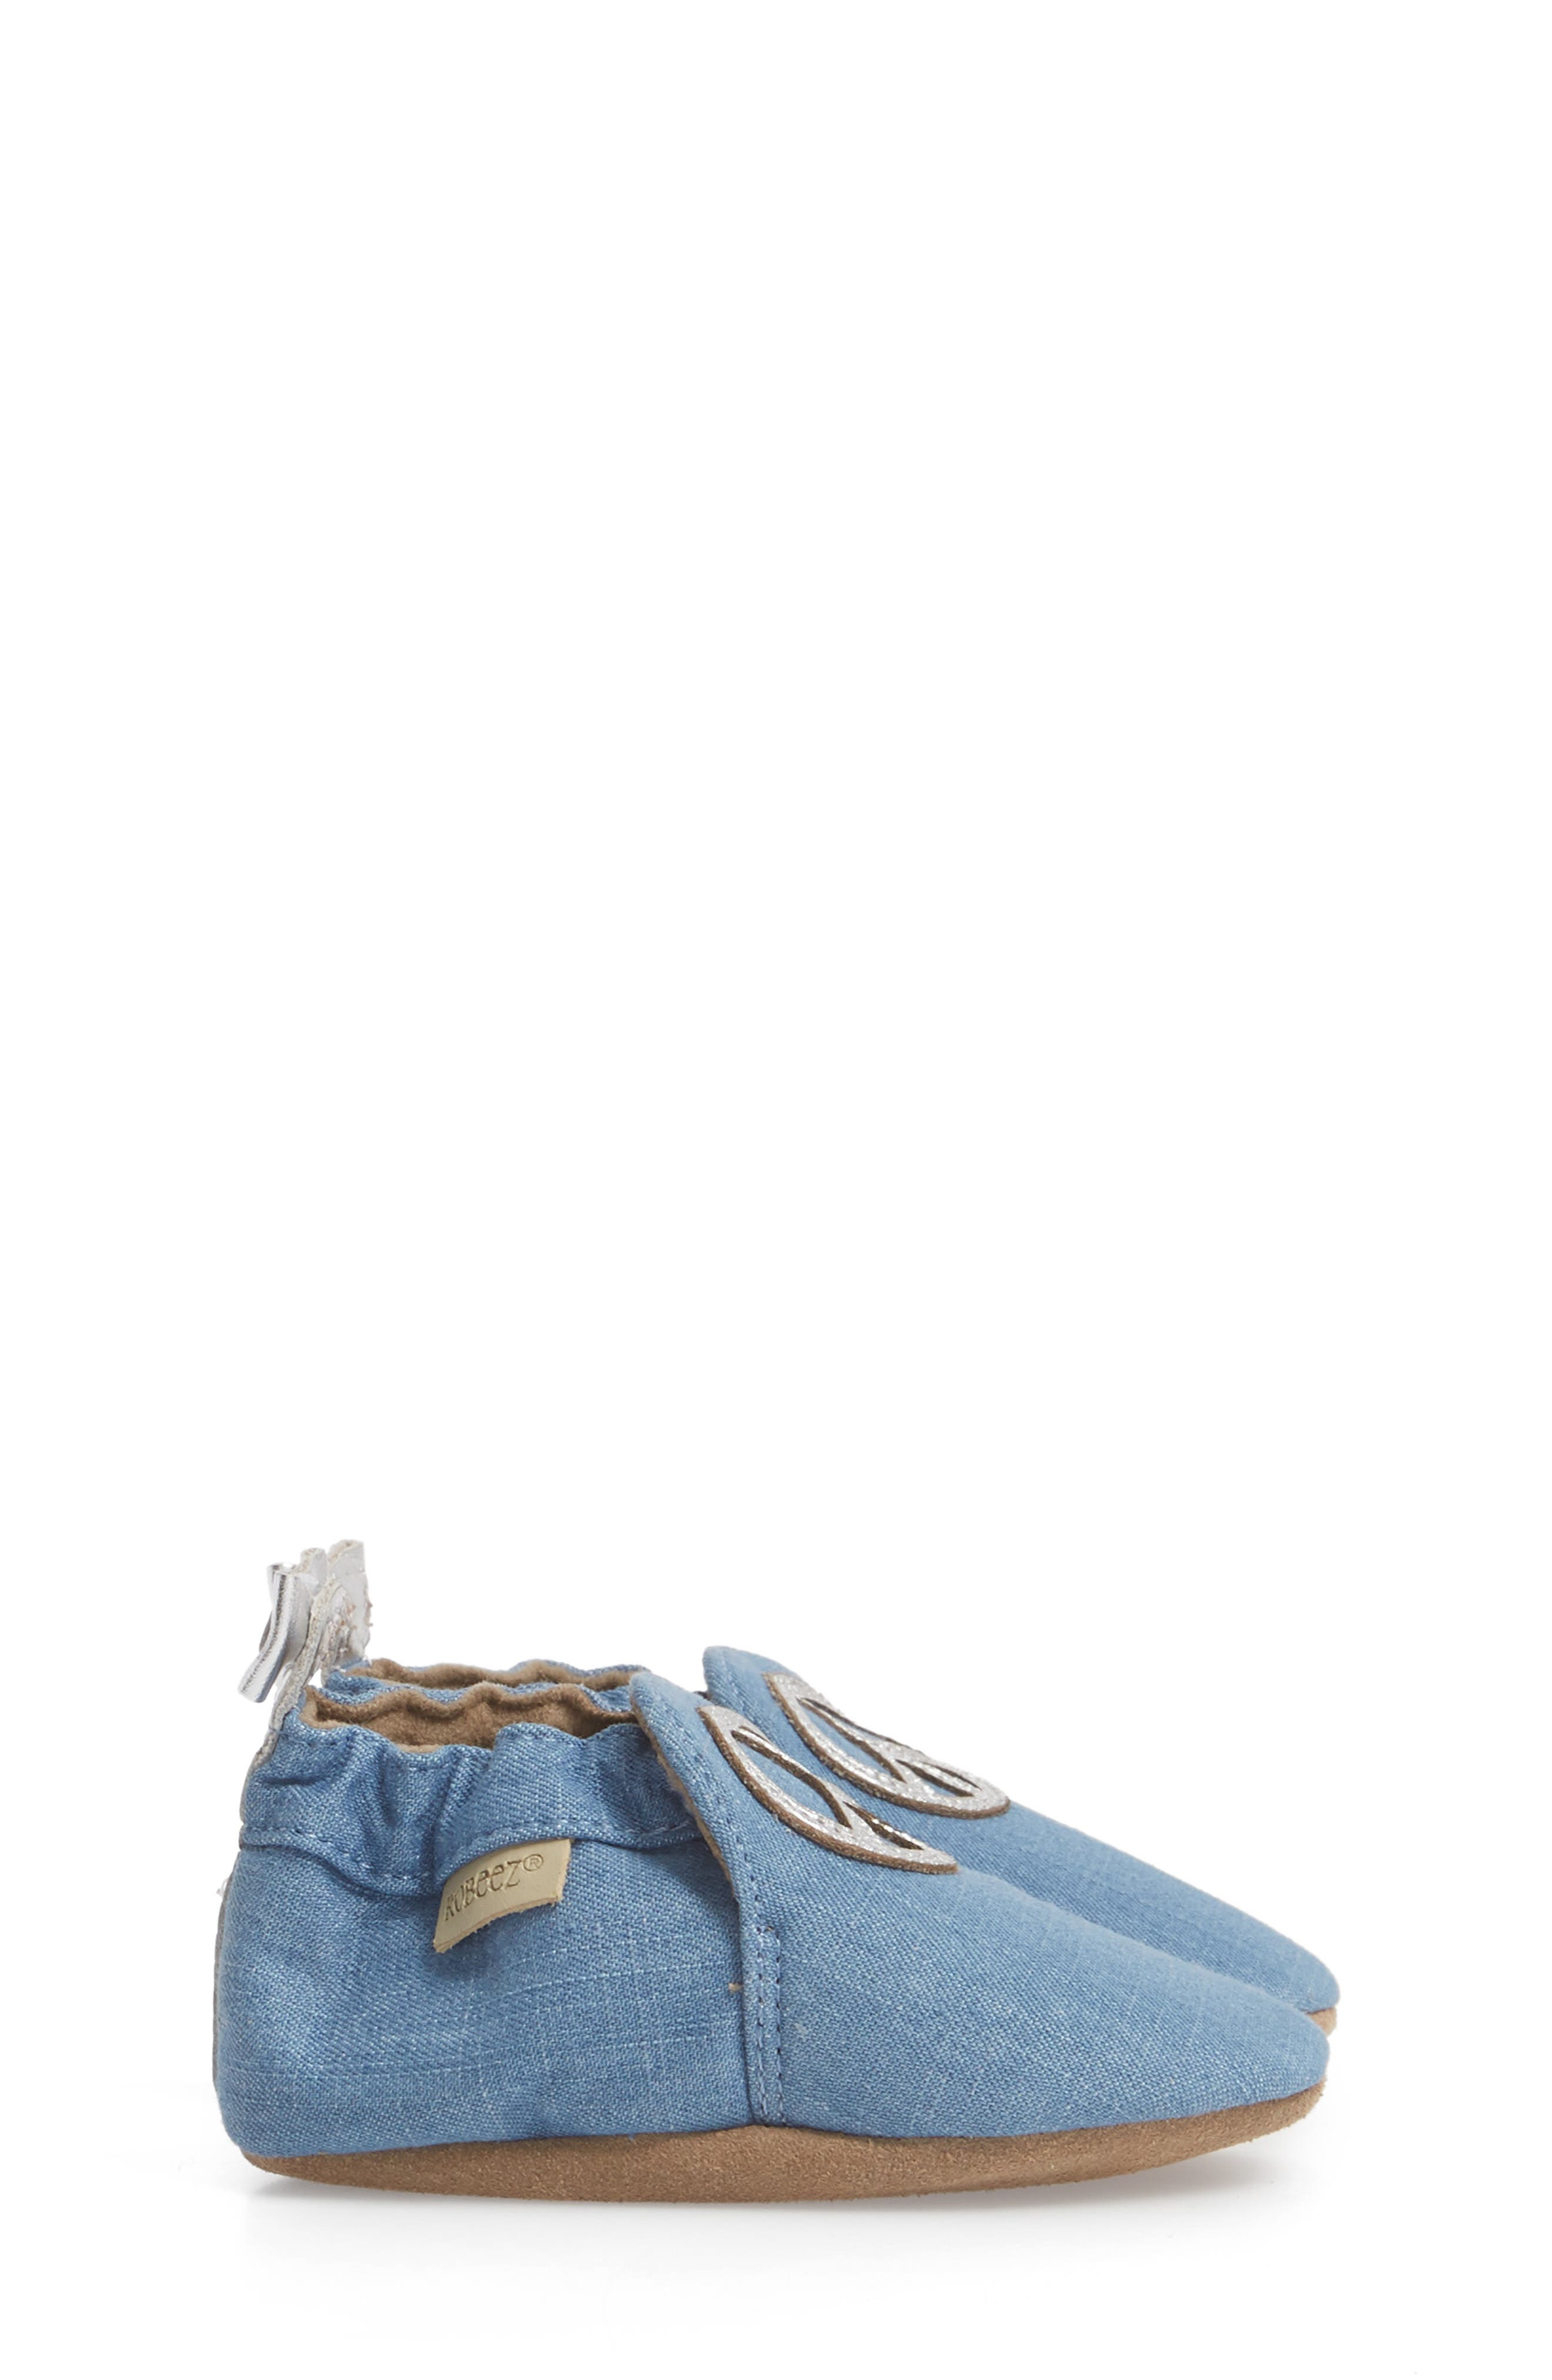 Peace Out Moccasin Crib Shoe,                             Alternate thumbnail 3, color,                             BLUE